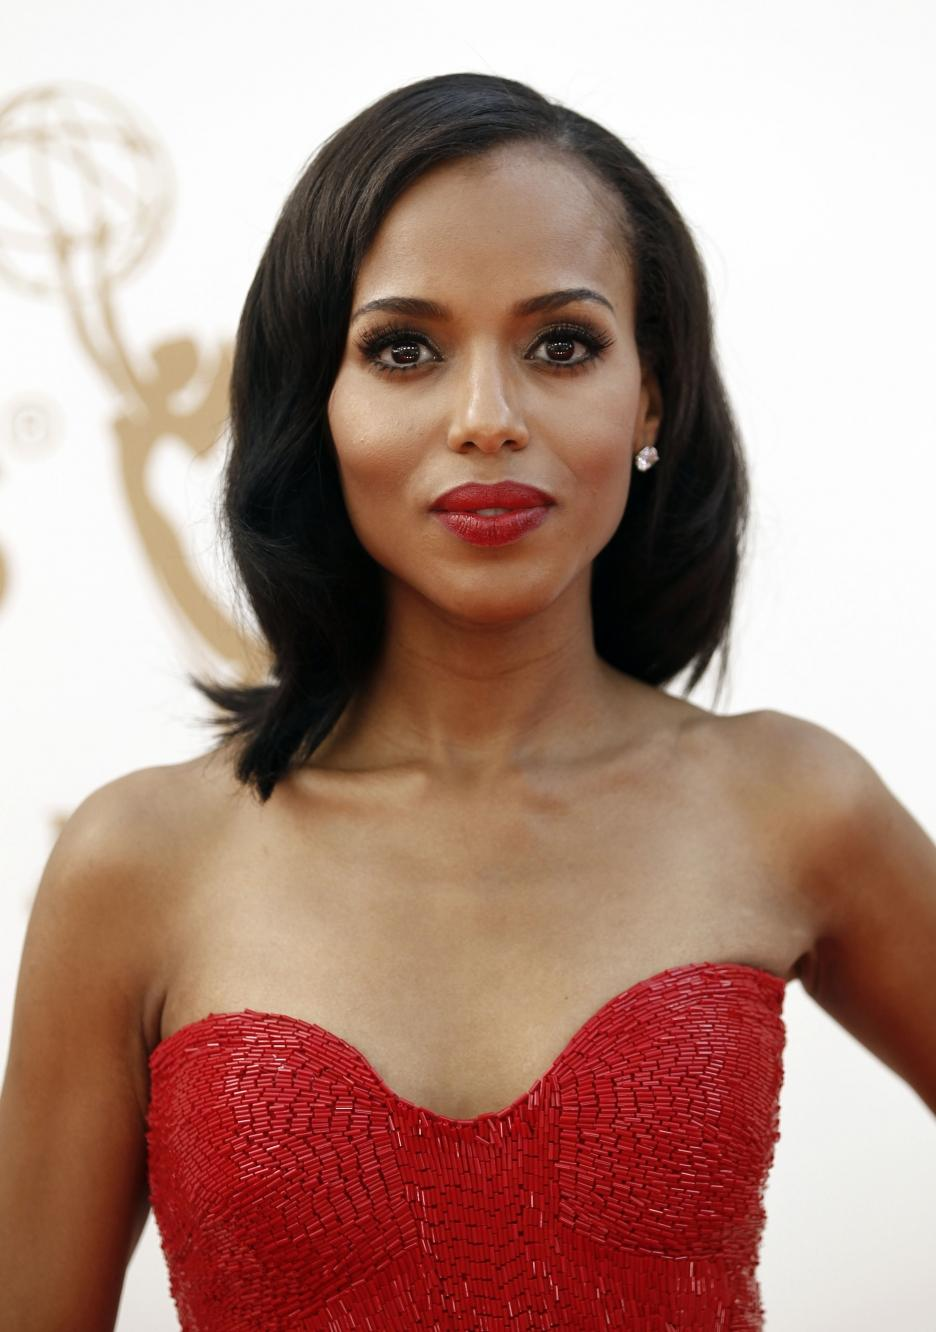 kerry washington Group with 53 items